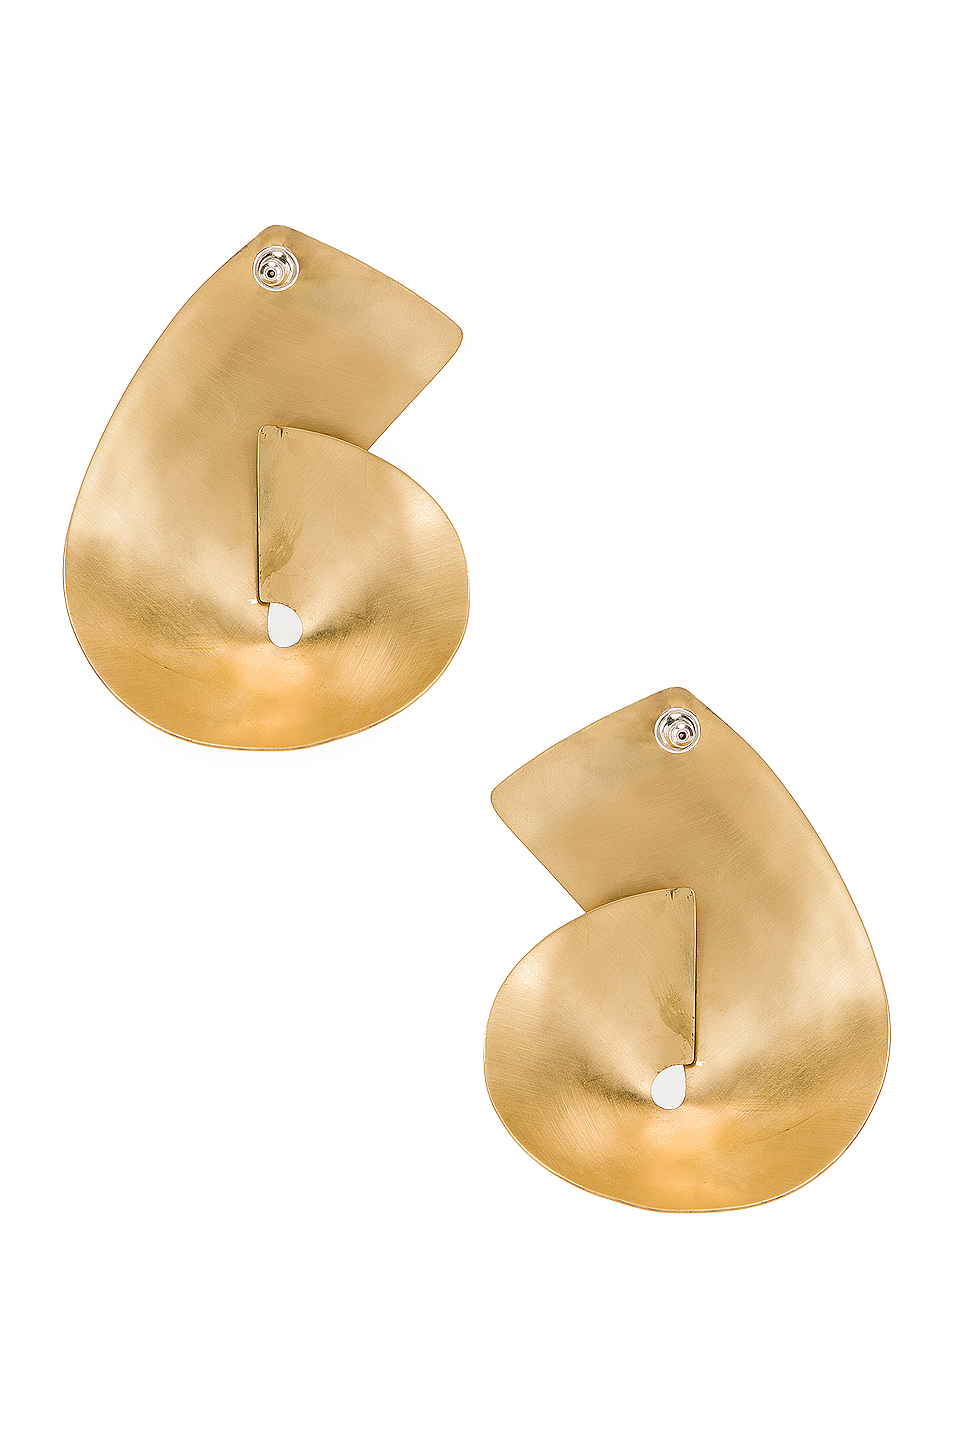 Fay Andrada Liike Large Earrings